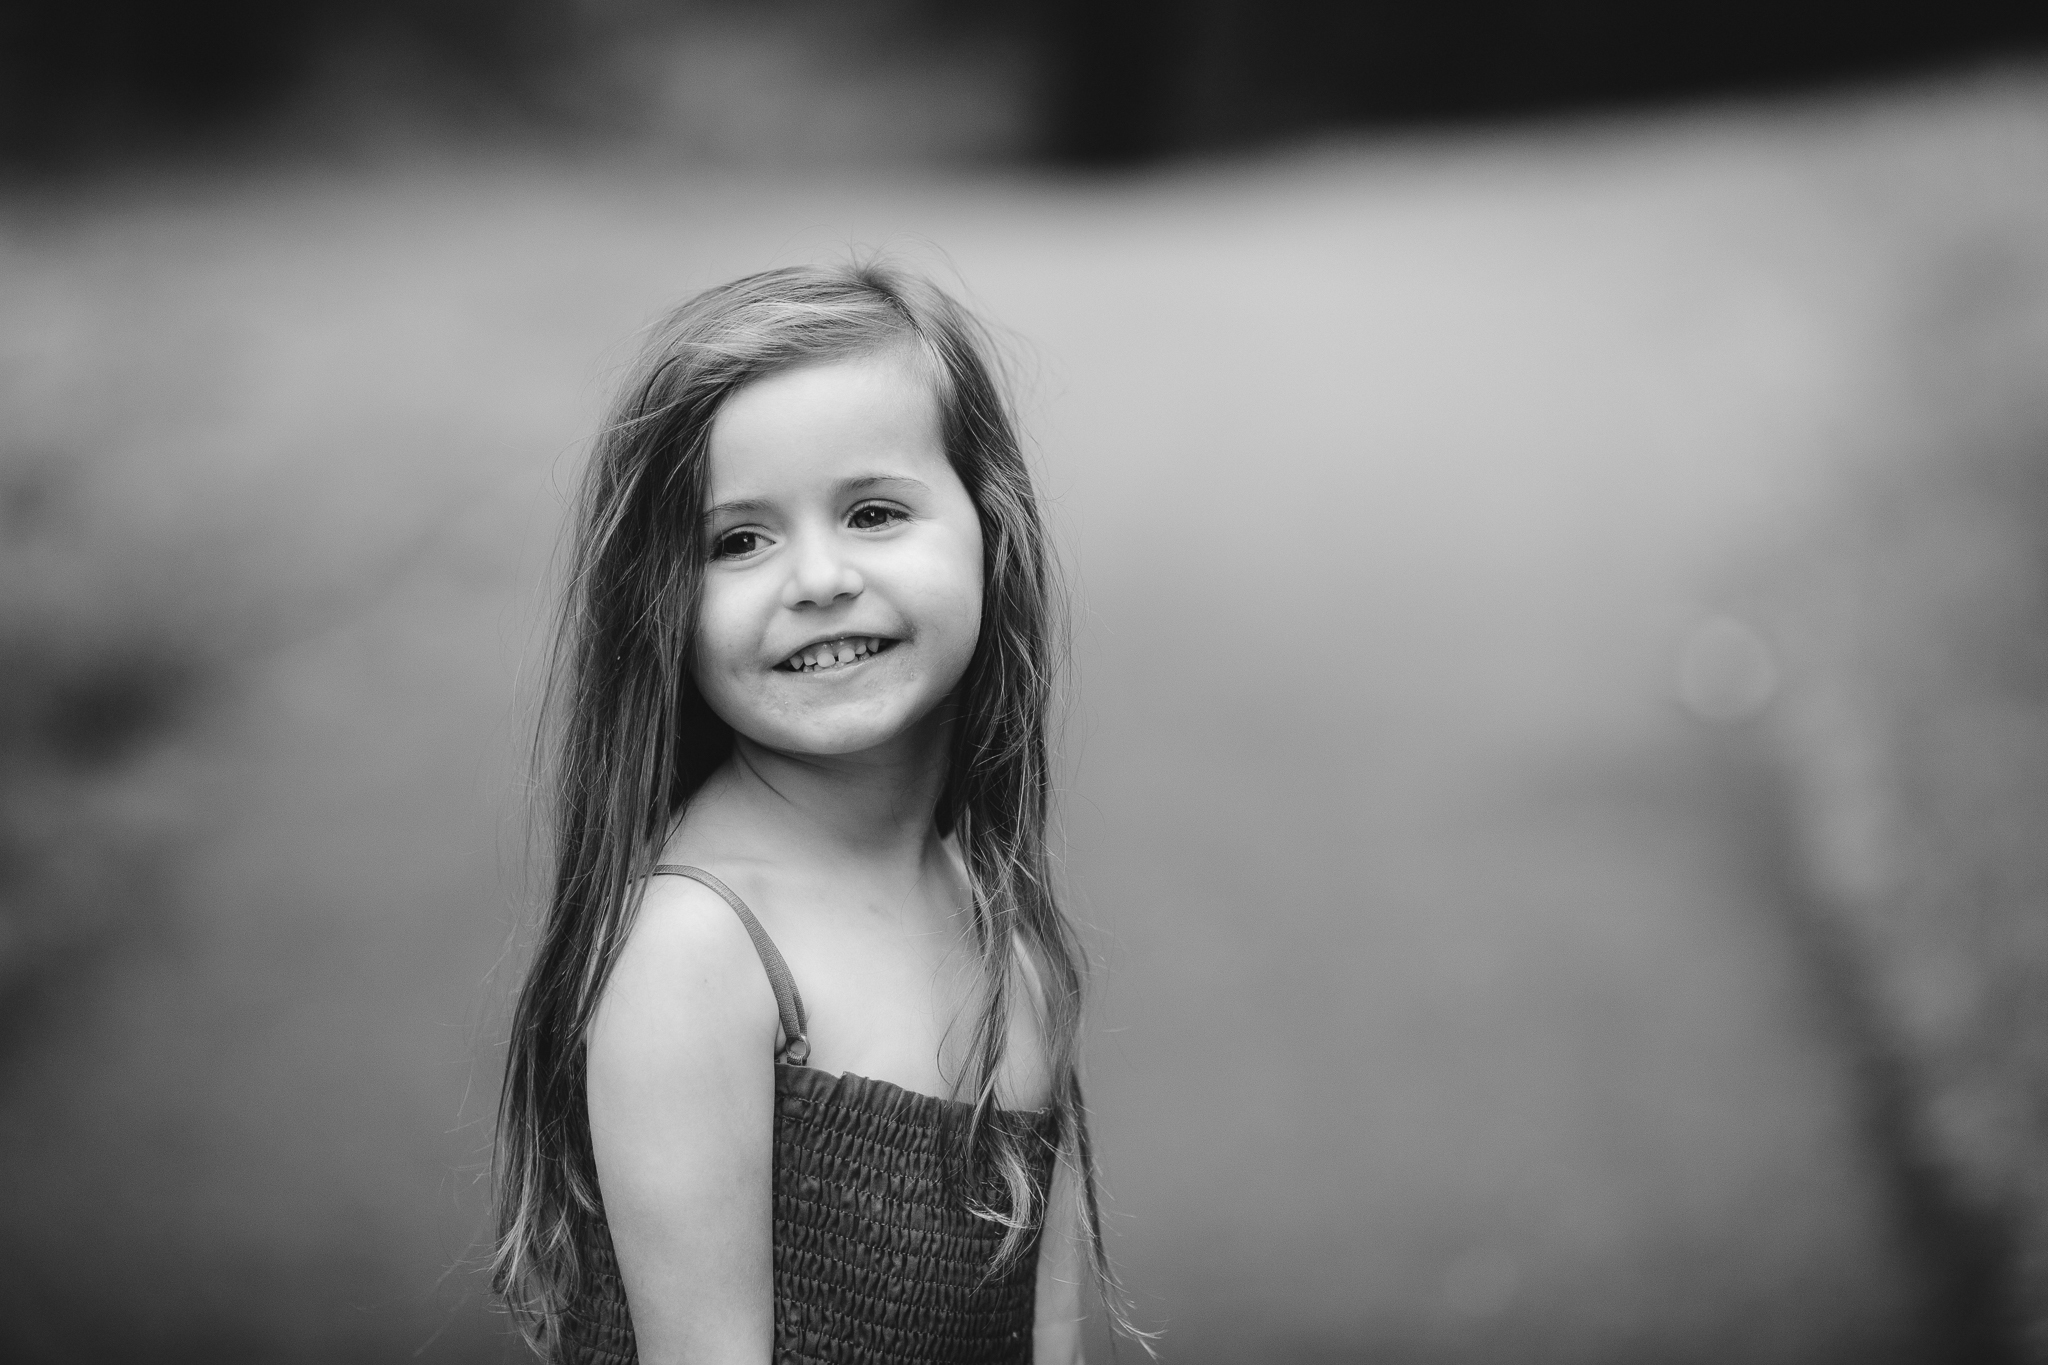 black and white portrait of a girl summer Ashburn Loudoun Northern Virginia family lifestyle documentary childhood Marti Austin Photography